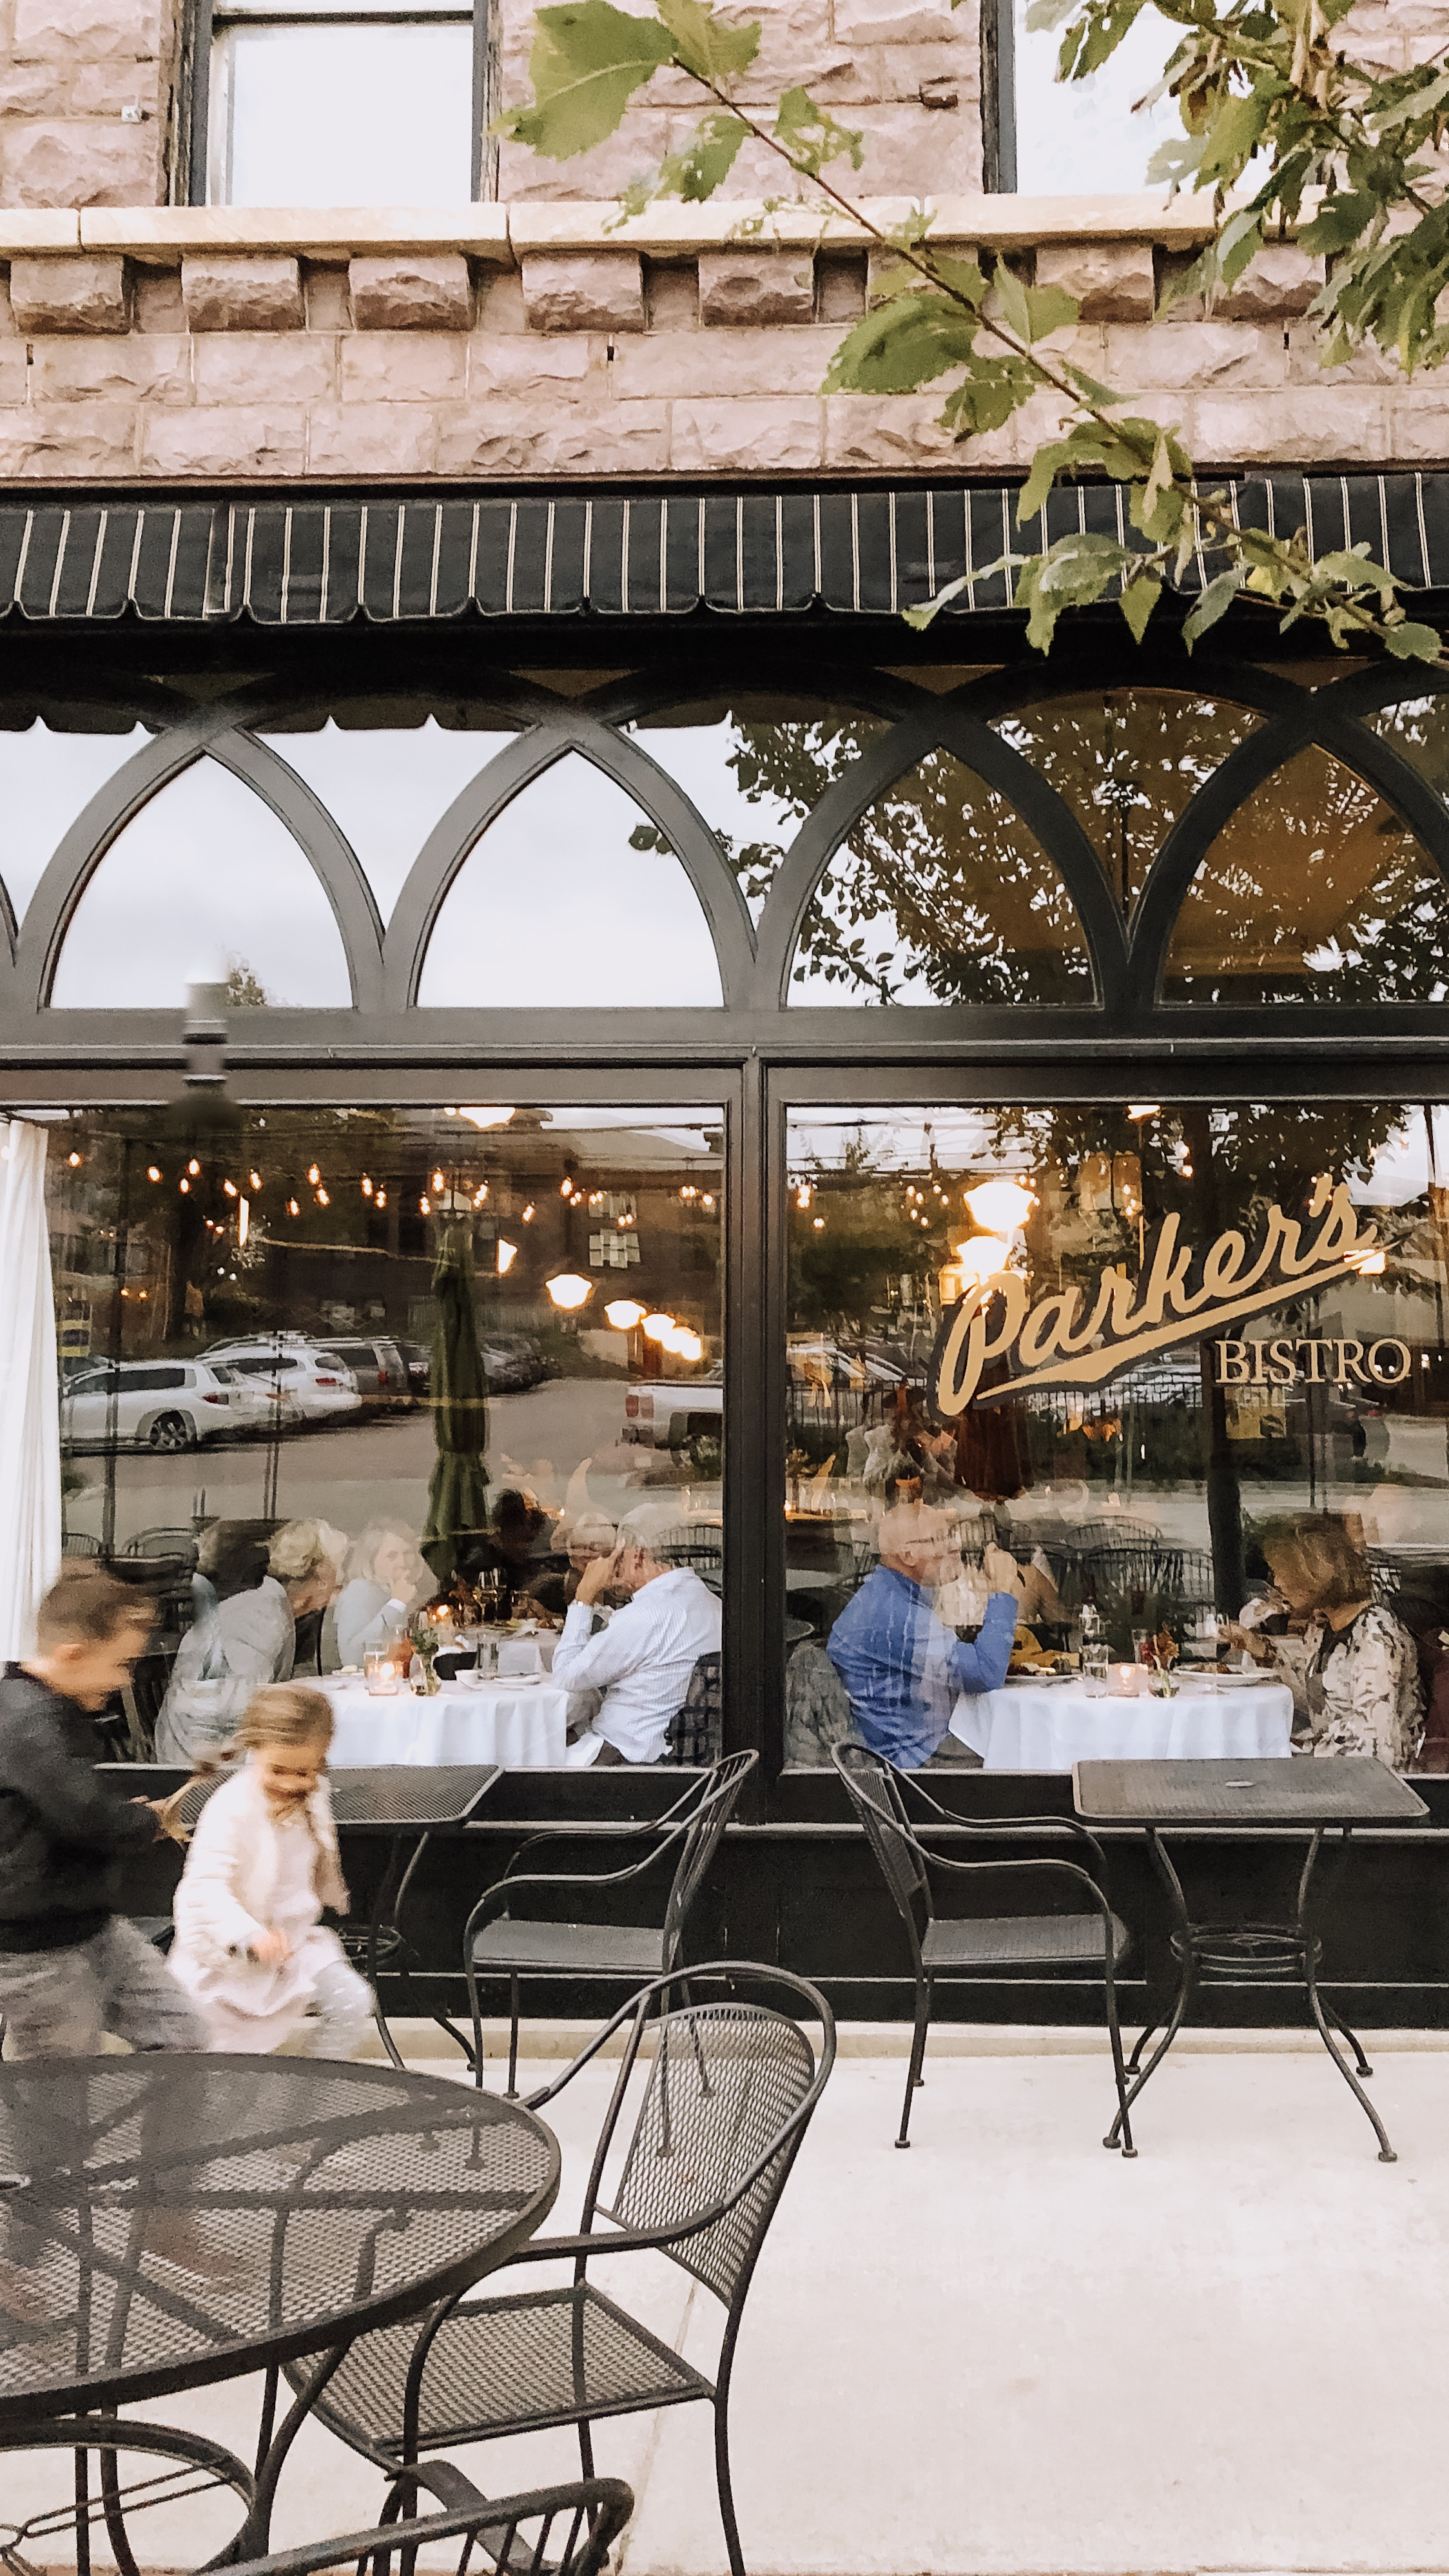 parker's bistro in sioux falls, south dakota | thelovedesignedilfe.com #goodeats #foodie #visitsd #seasonsofsodak